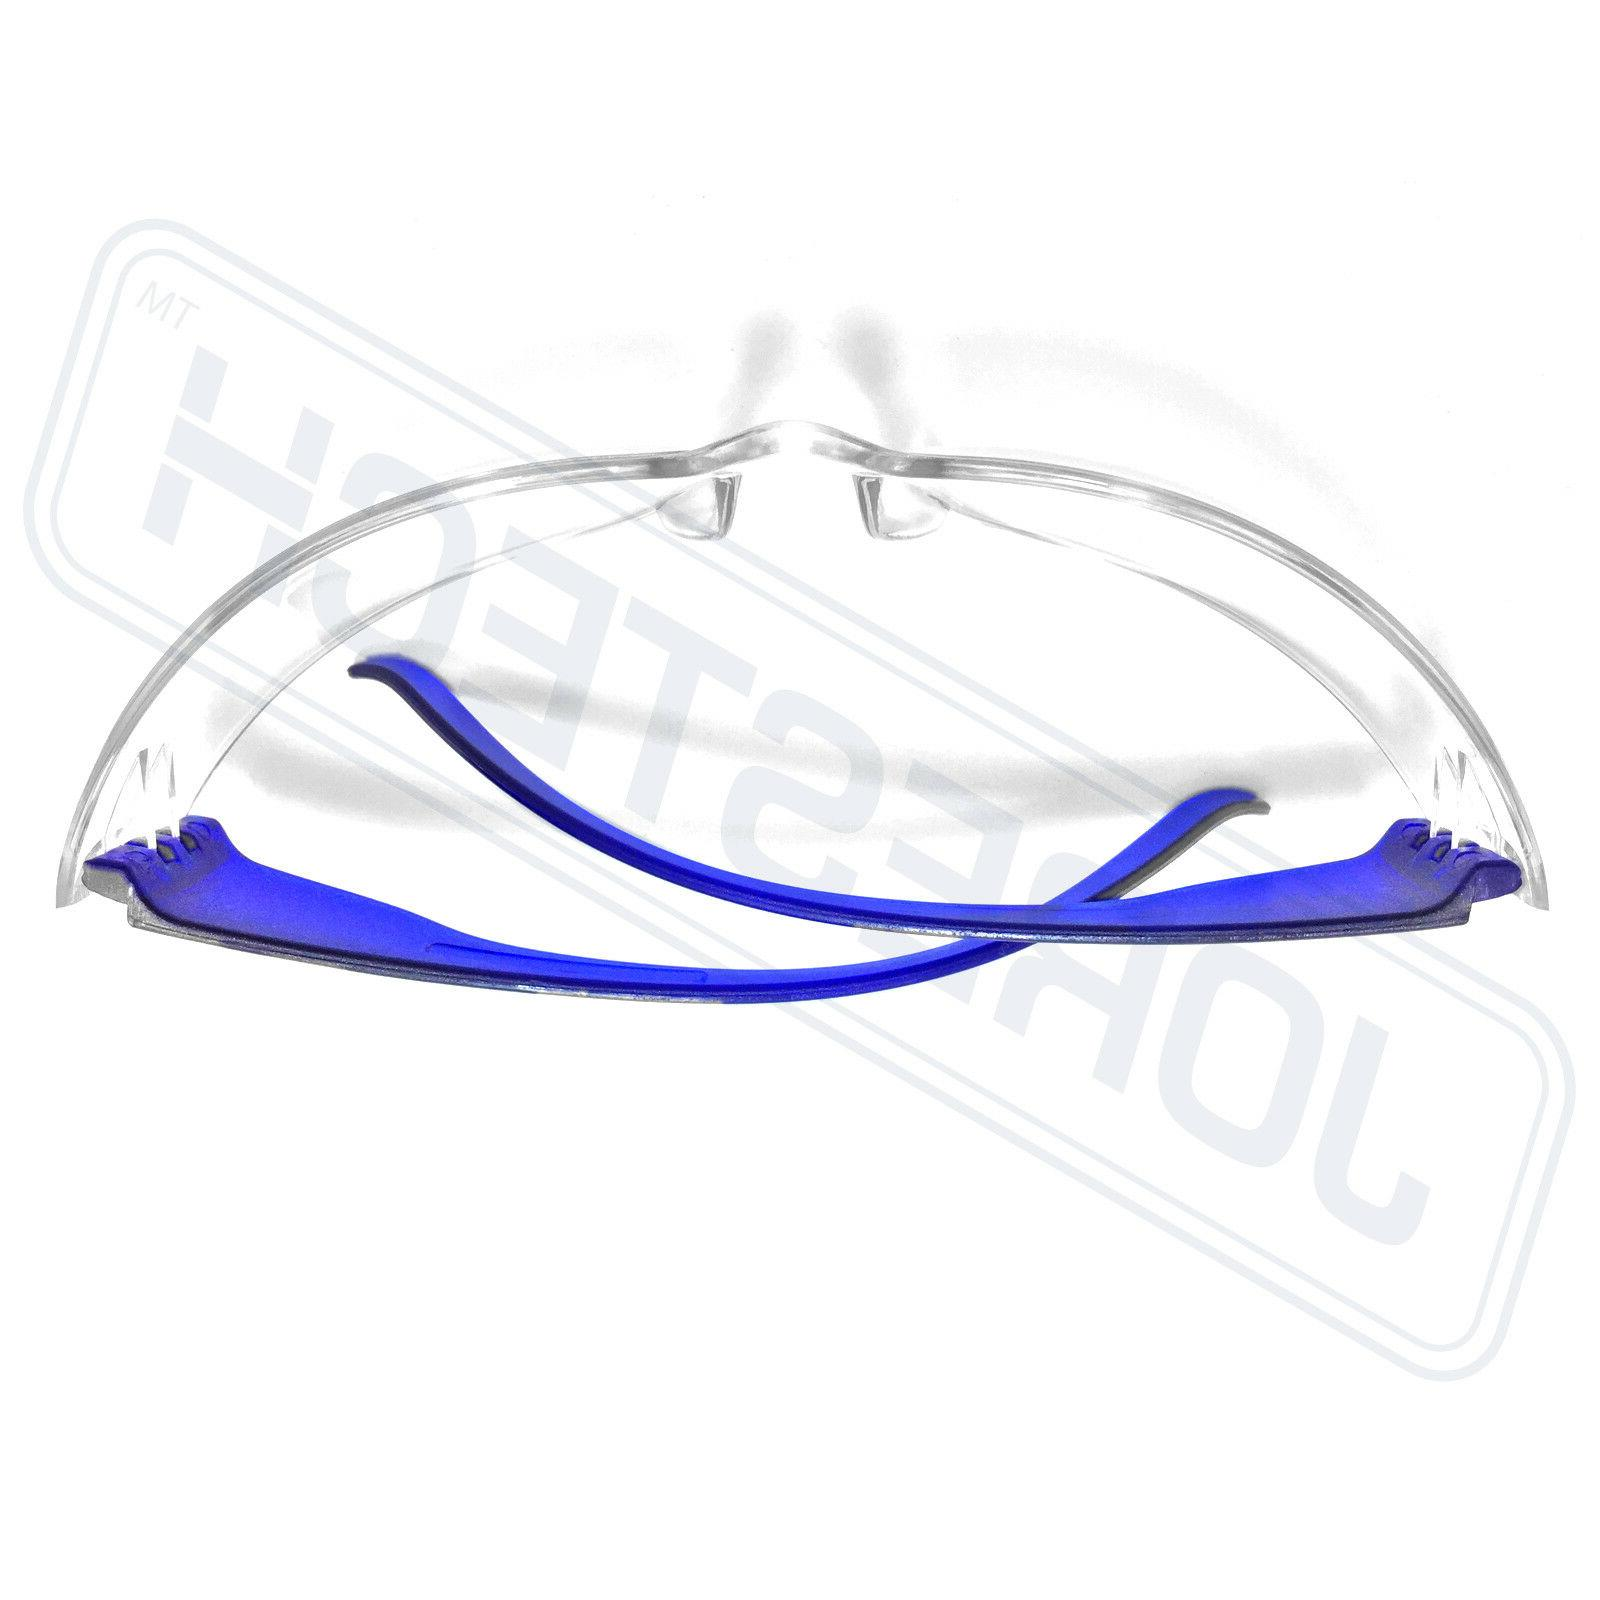 JORESTECH Vision frame clear Lens Safety Sunglasses